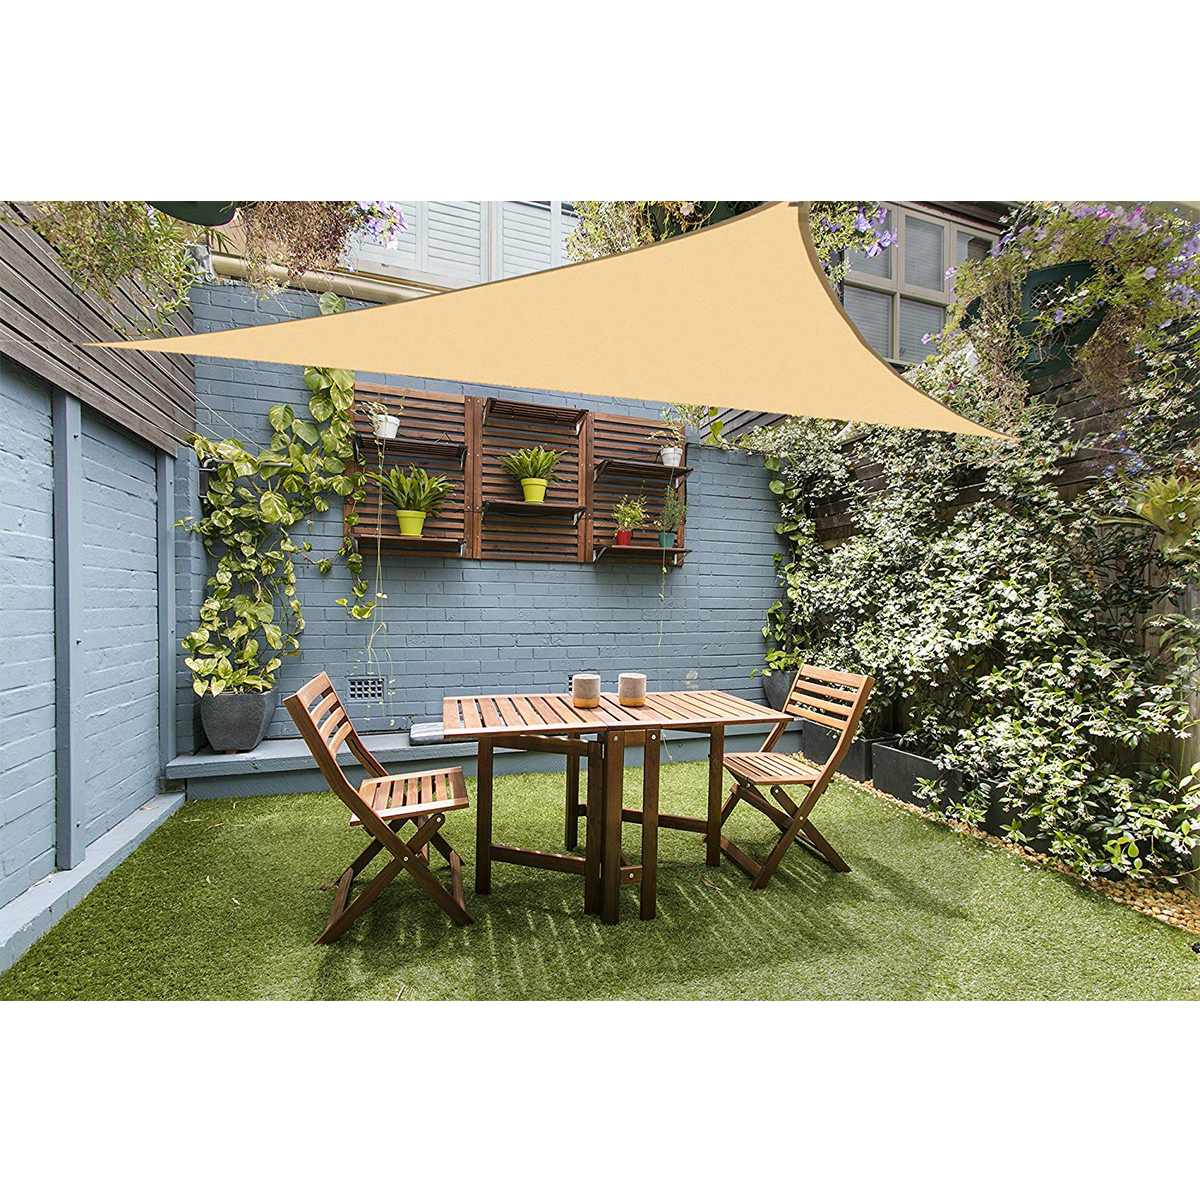 Beige right triangle 3x3x4.3 4x4x5.7 3x4x5 shade sail home patio outdoor waterproof and radiation protectionBeige right triangle 3x3x4.3 4x4x5.7 3x4x5 shade sail home patio outdoor waterproof and radiation protection